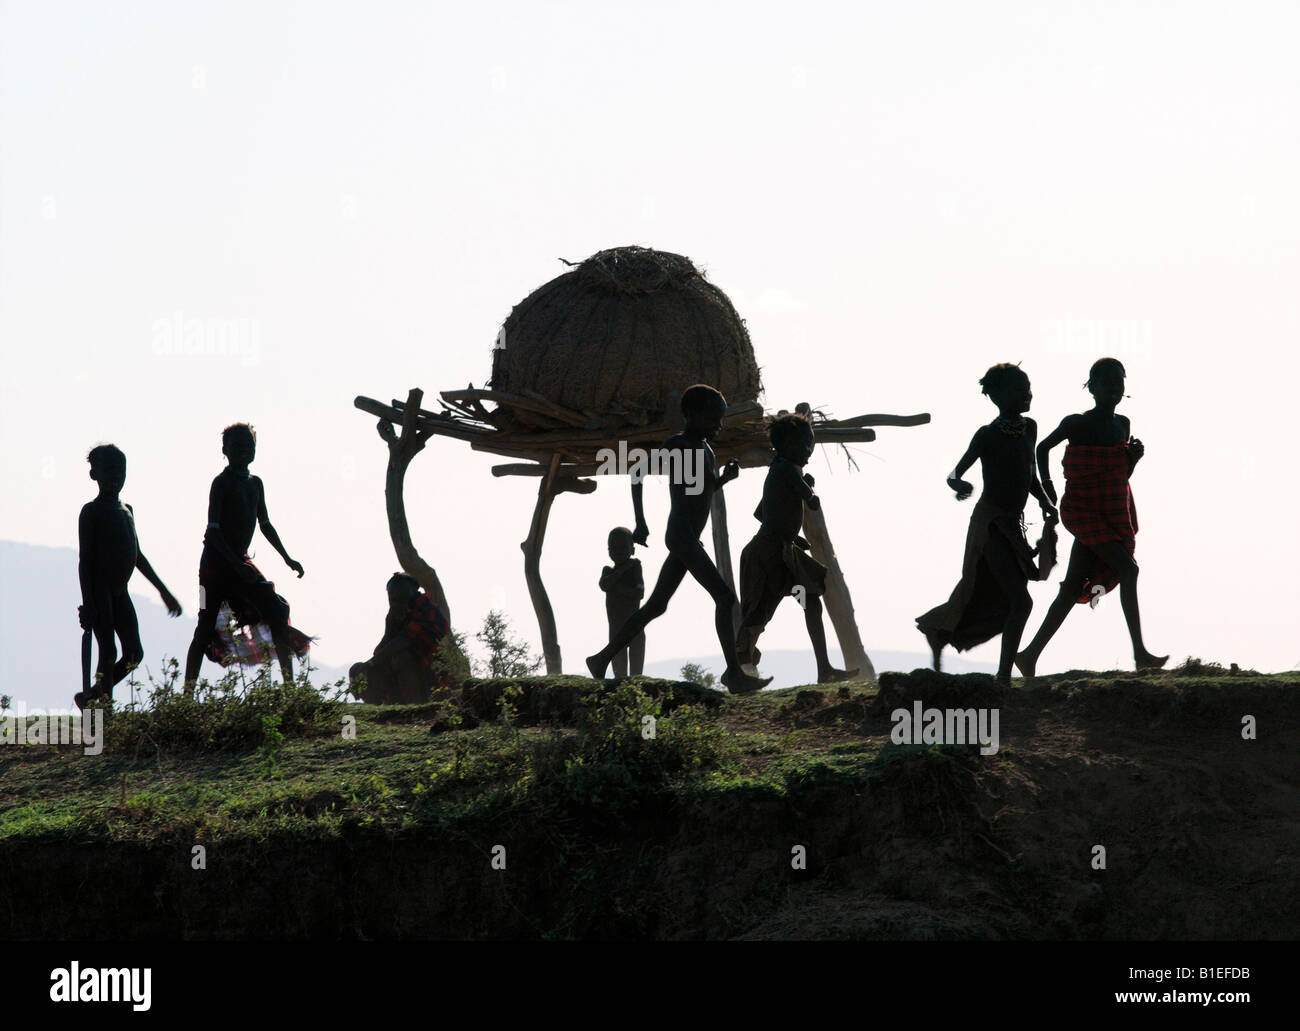 In the late afternoon, a group of Dassanech children hurry home along a bank of the Omo River in Southwest Ethiopia. - Stock Image